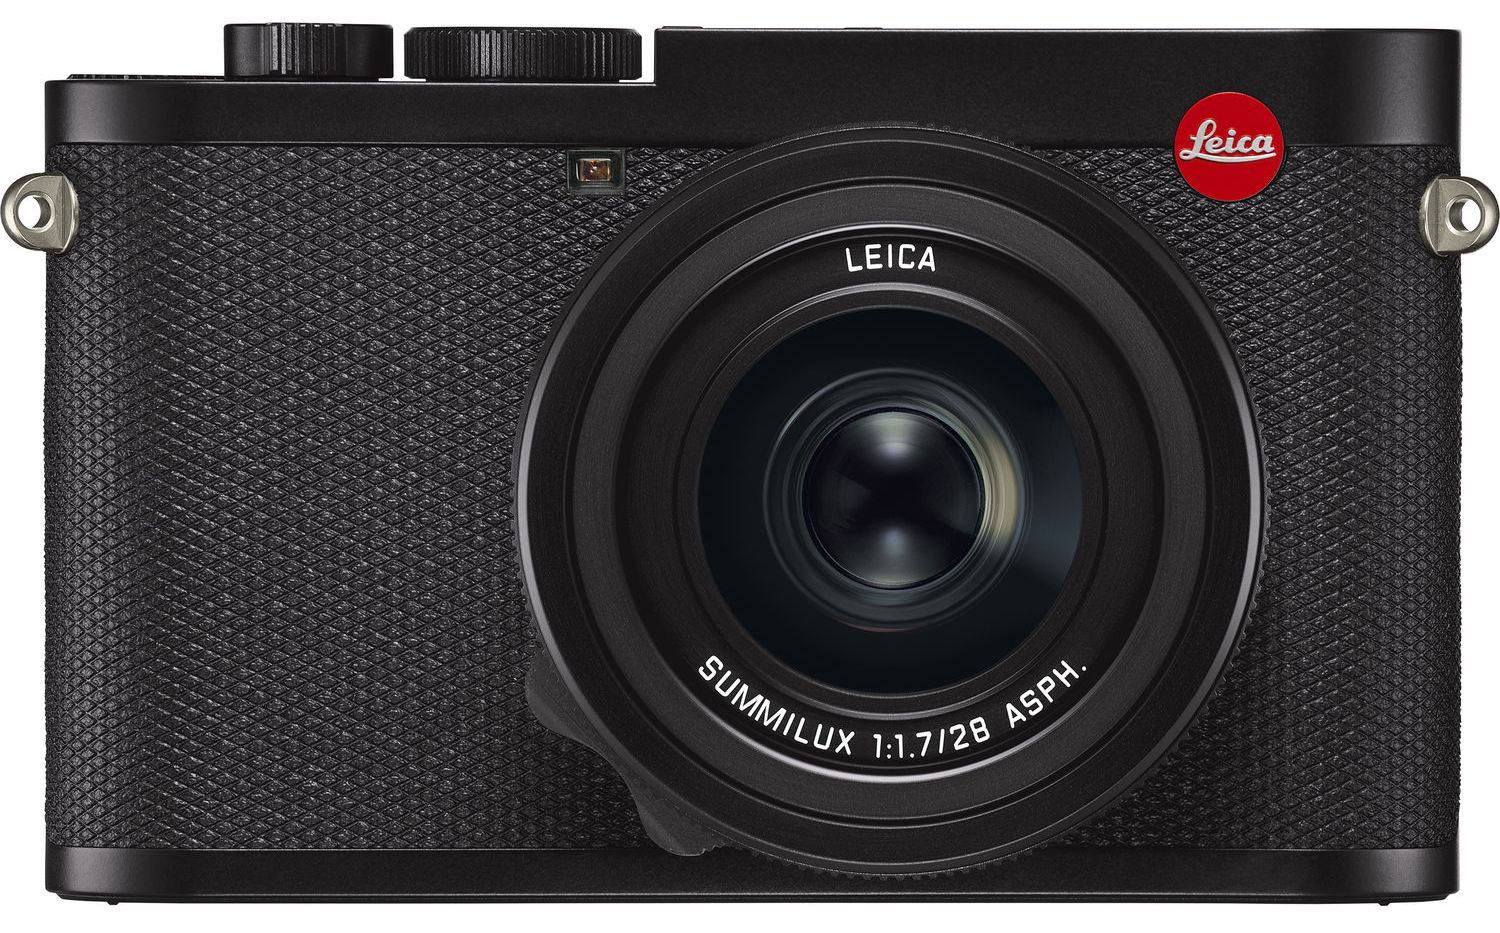 Best Camera for Street Photography Leica Q2